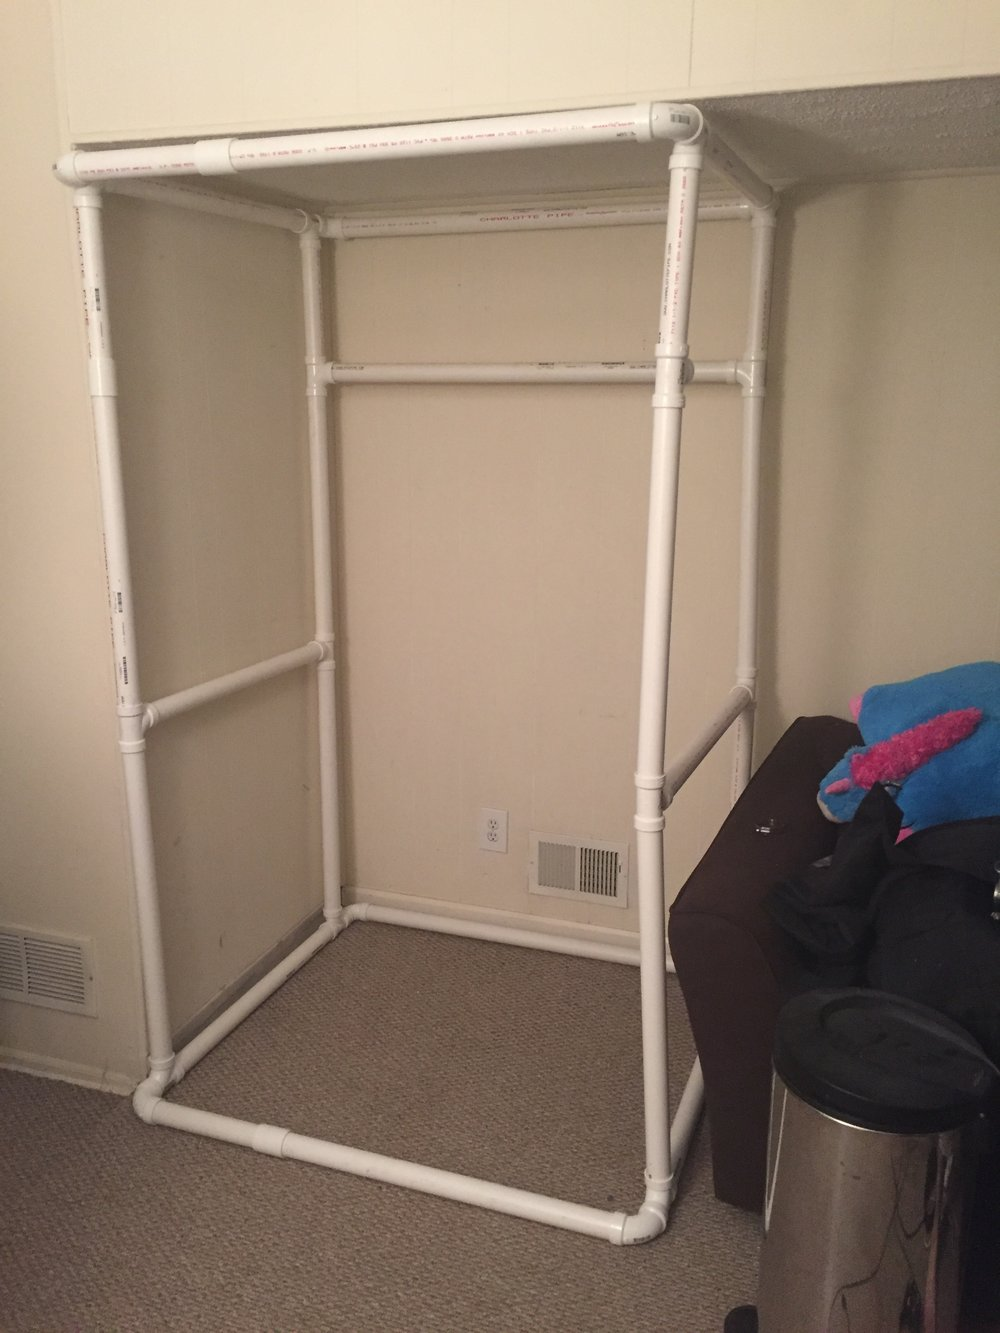 PVC Pipe Sound Booth Frame!